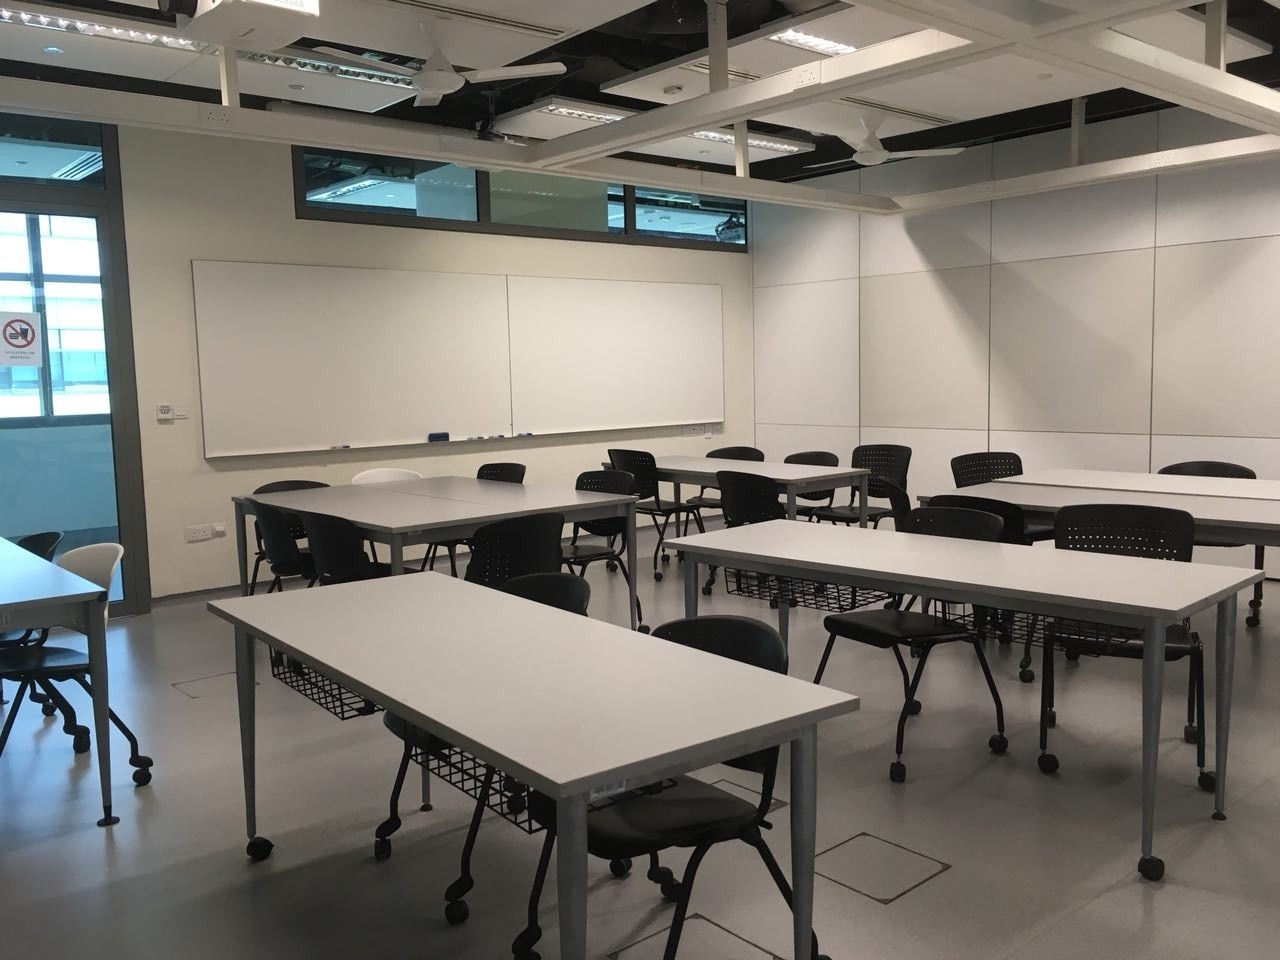 """The interior. Tables and chairs can be easily rolled around to facilitate classroom discussions and etc. It's a """"cozy"""" and """"comfortable"""" environment, my guide feels."""